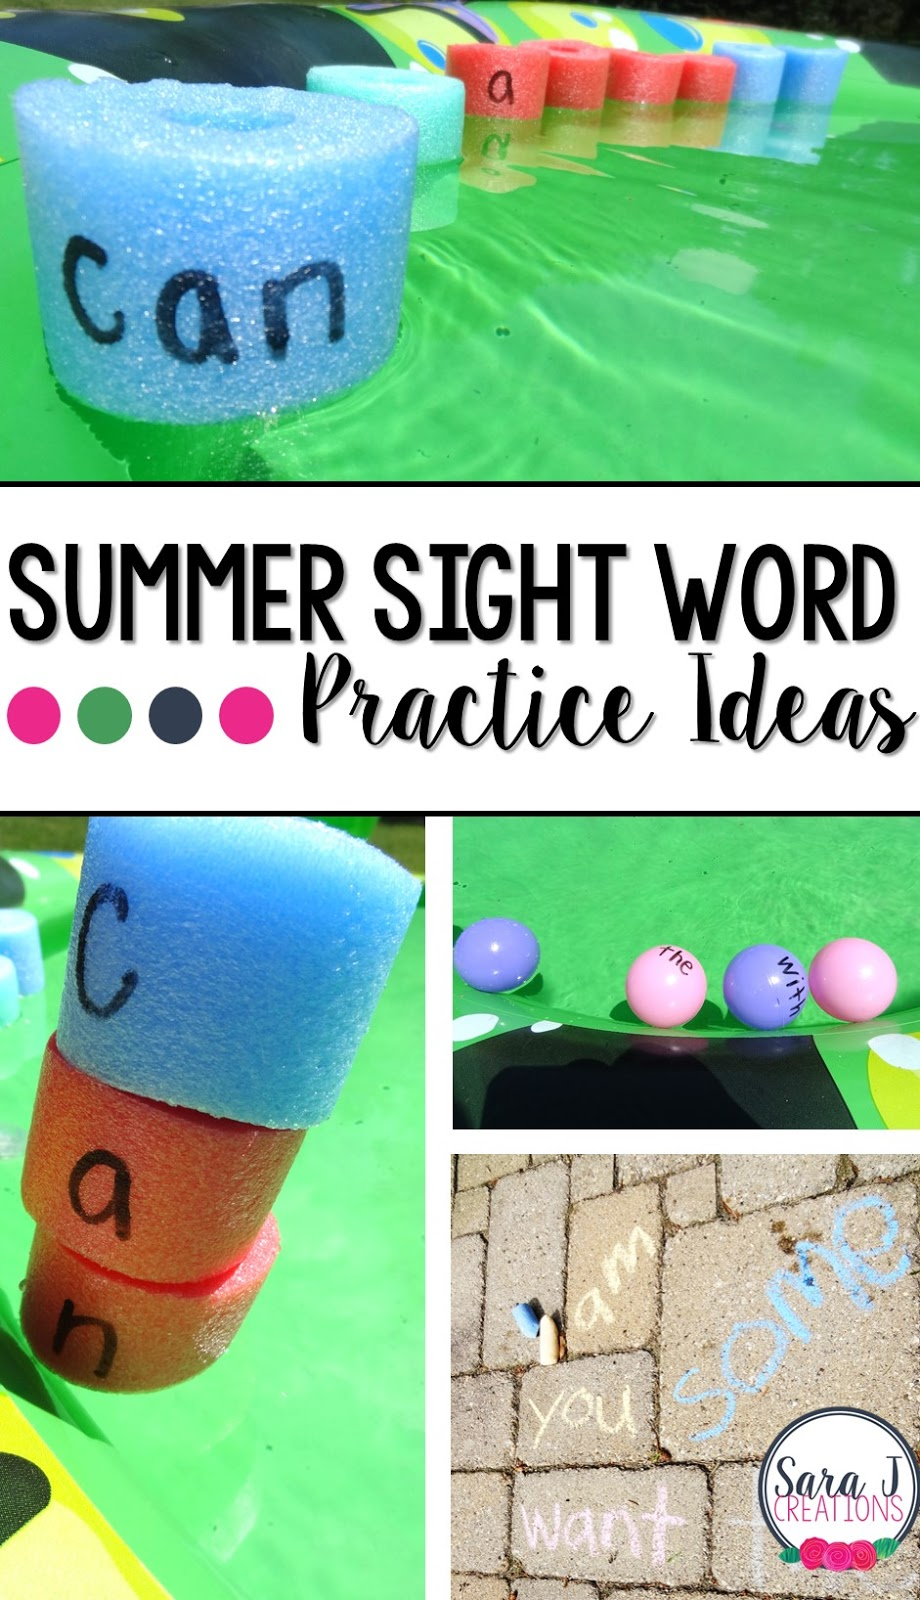 Here are 3 easy ways to make practicing sight words fun, hands on and best of all, an outside activity!  You can do these in the classroom/playground or at home.